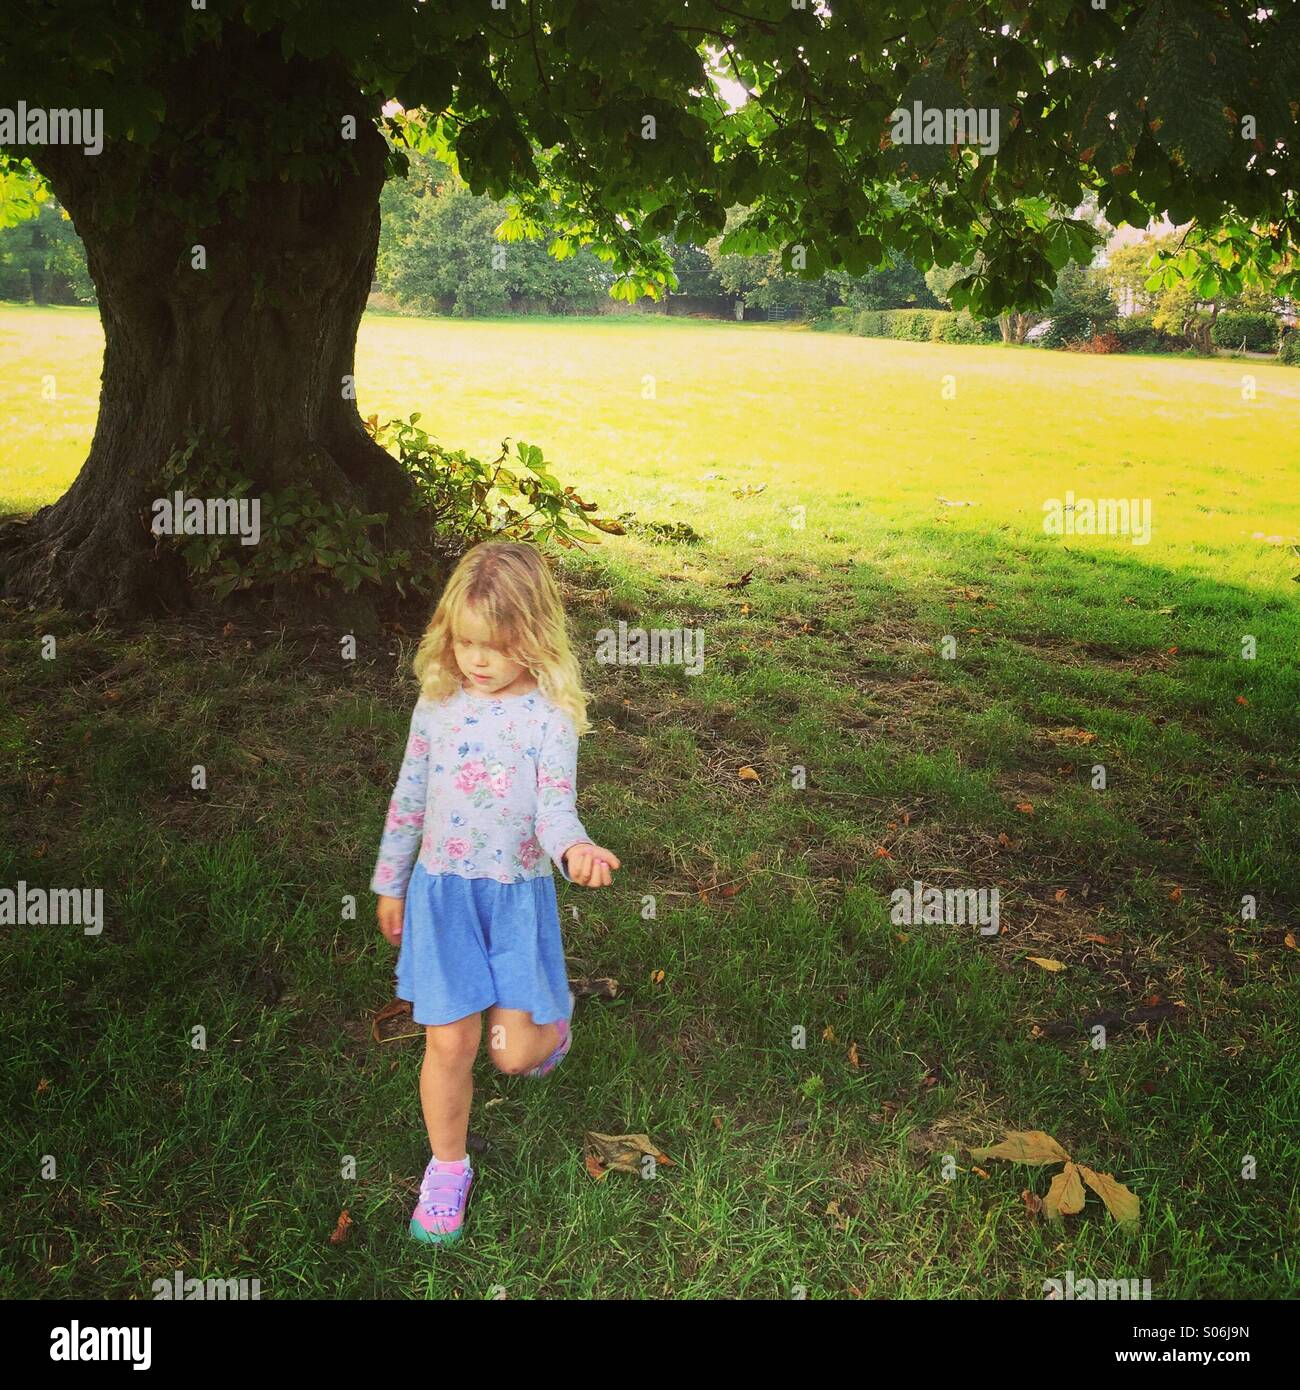 Small girl in a dress walking beneath a chestnut tree - Stock Image